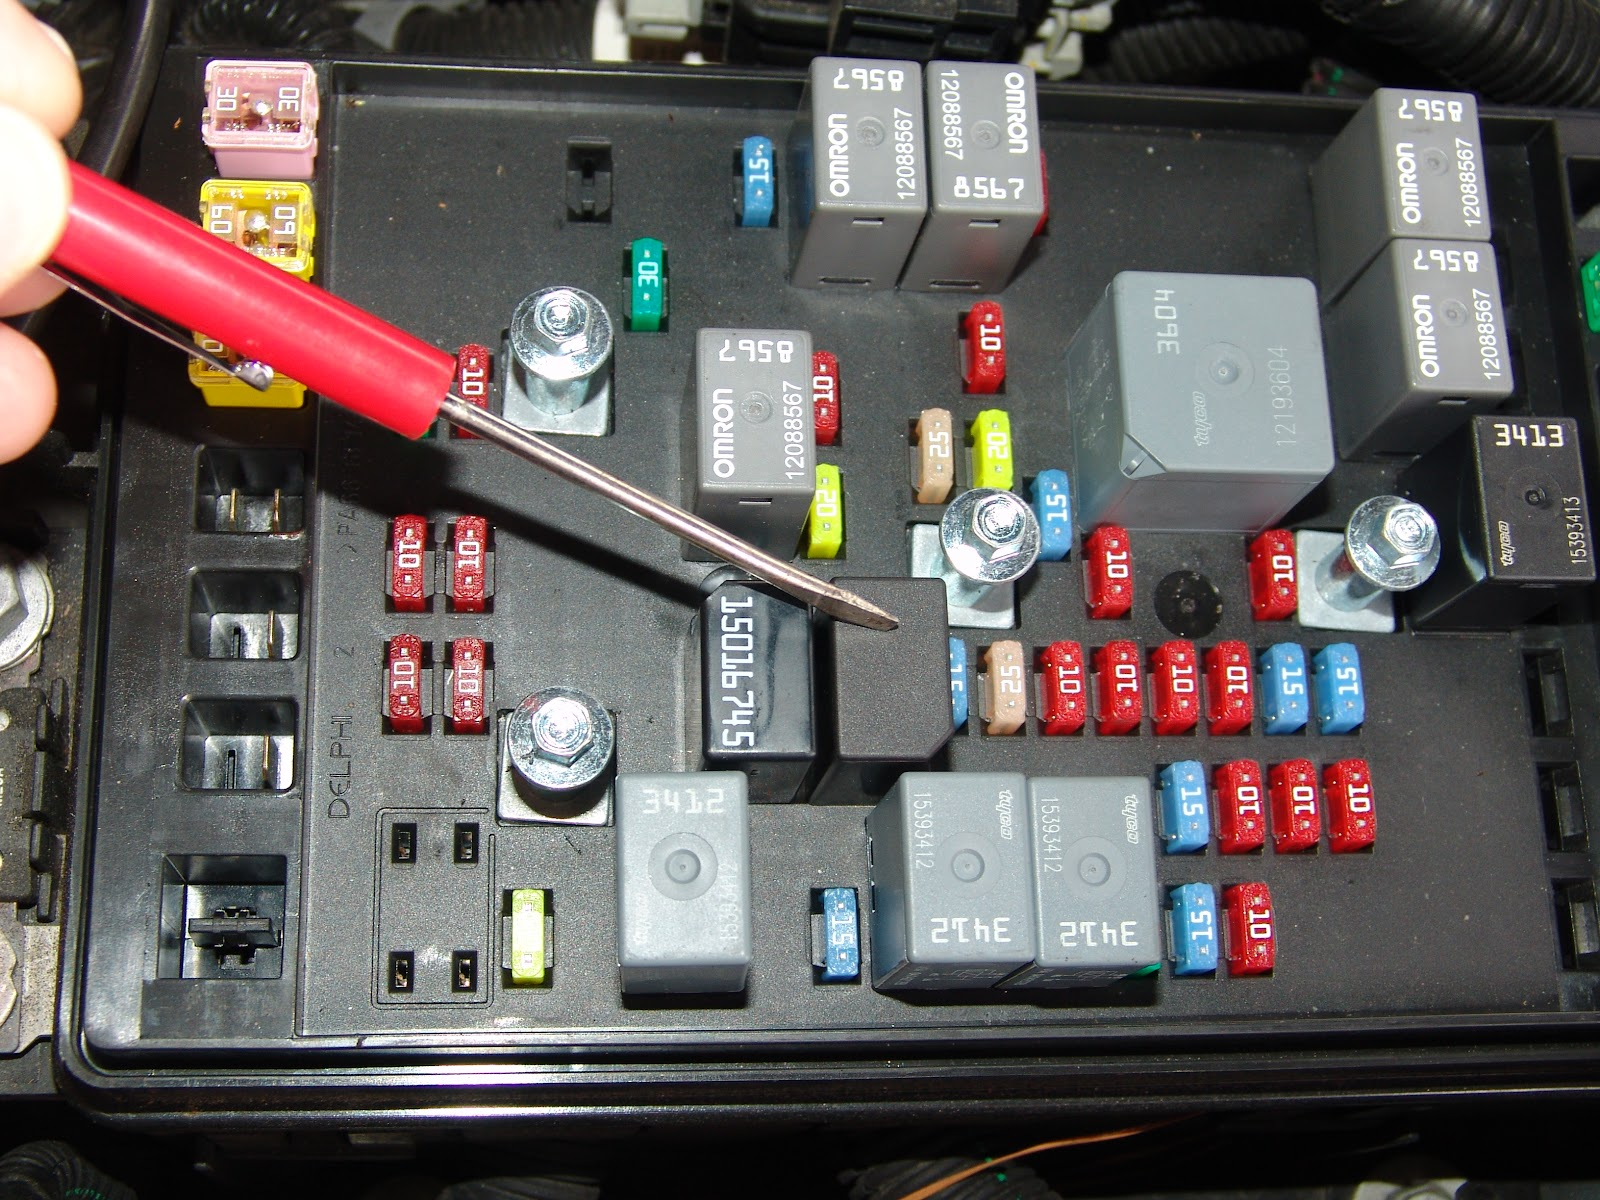 02 chevy cavalier radio wiring diagram with Diagram On 2002 Gmc Envoy Rear Fuse Box on Showthread additionally Gm car obd ii pinout together with 2006 Nissan Xterra Drive Belt Diagram as well 93193 Diagram   Wires also Mazda Protege Daytime Running Light Drl Wiring Diagram.